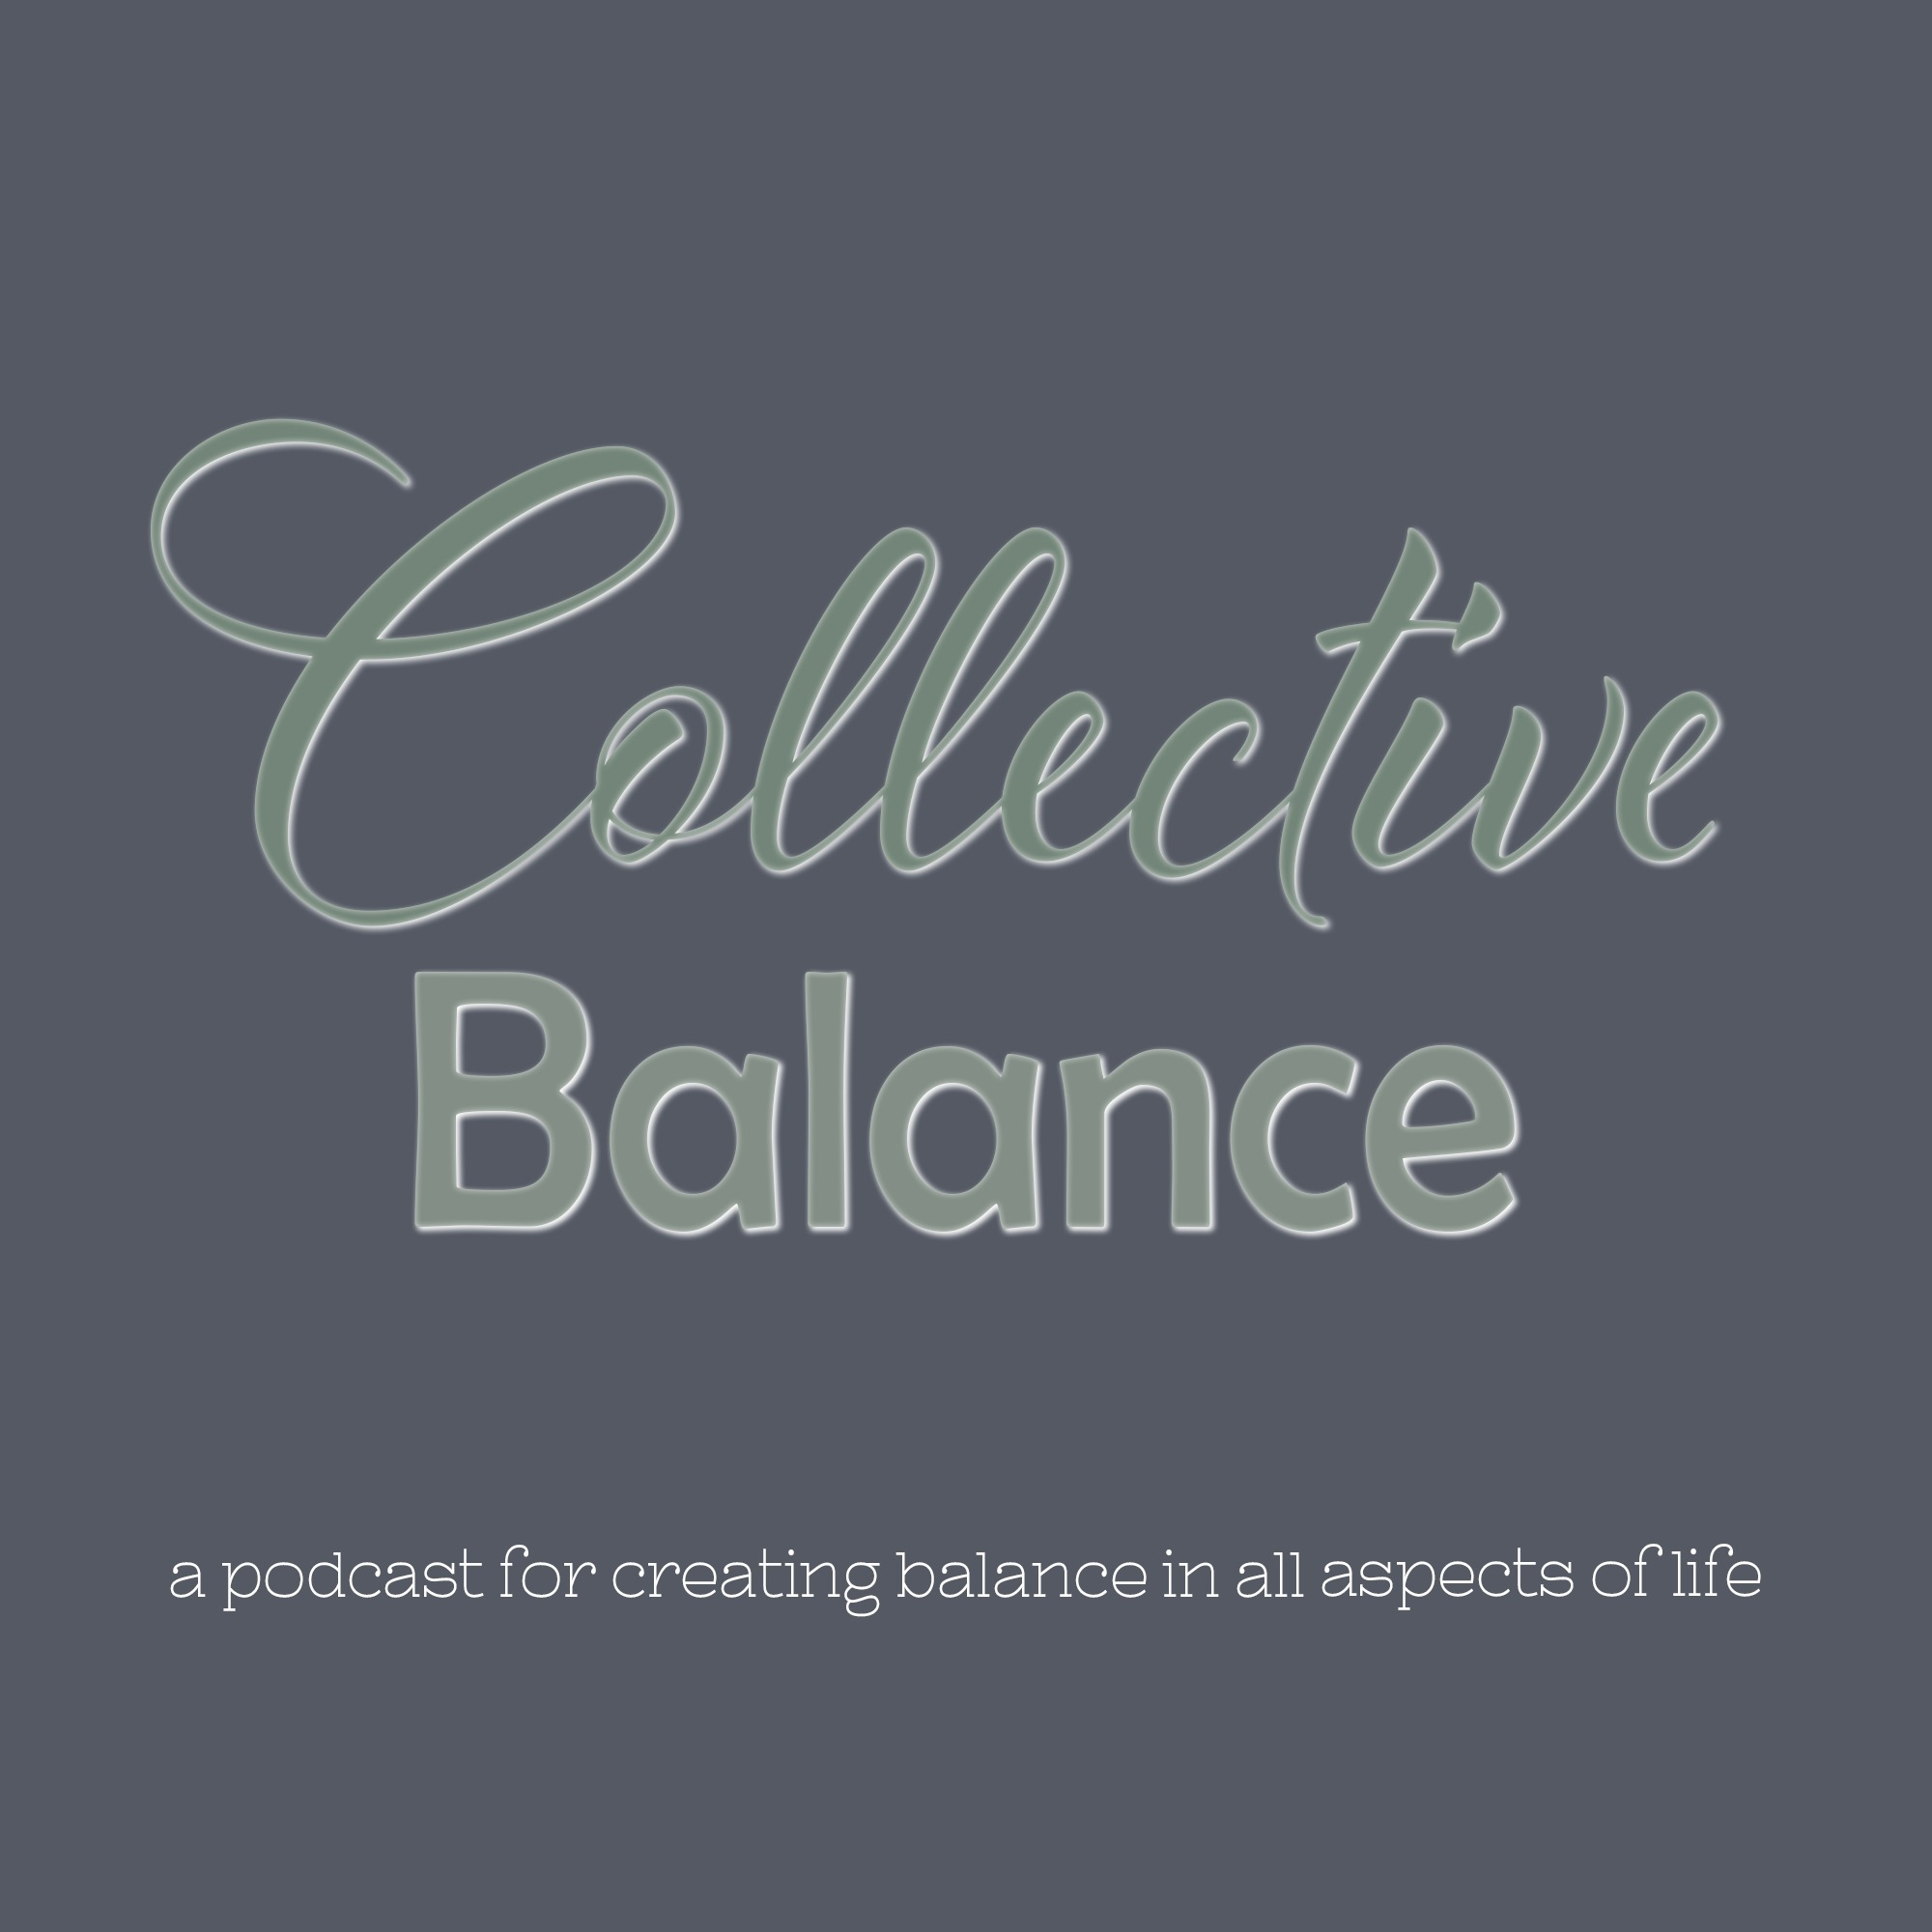 00: Introduction to Collective Balance